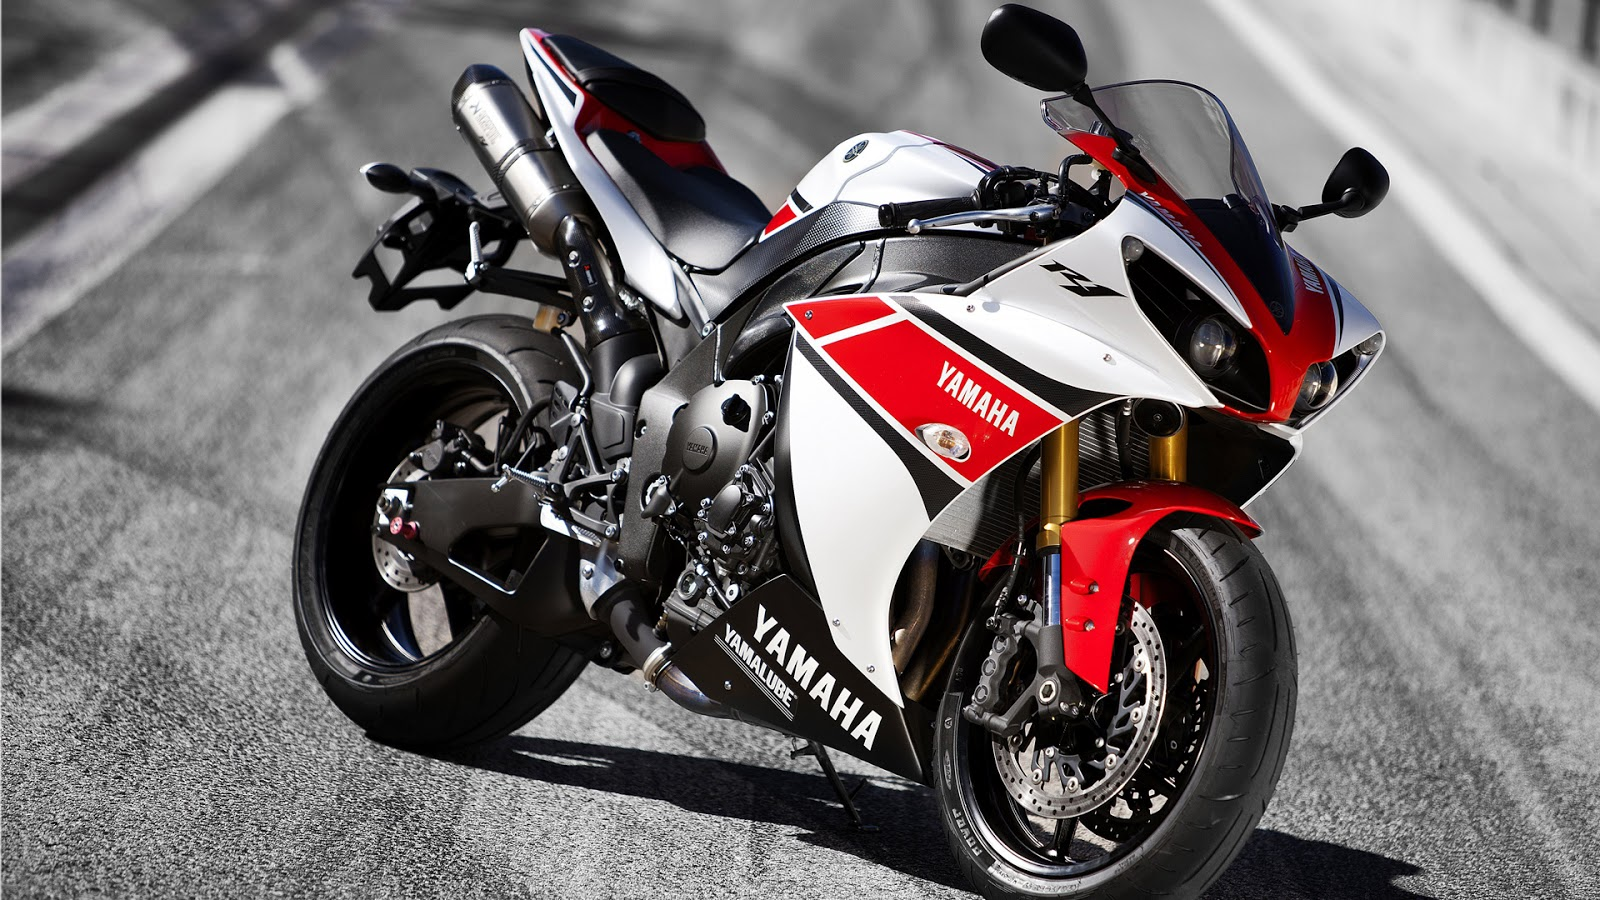 Yamaha R1 Hd Wallpapers High Definition Free Background